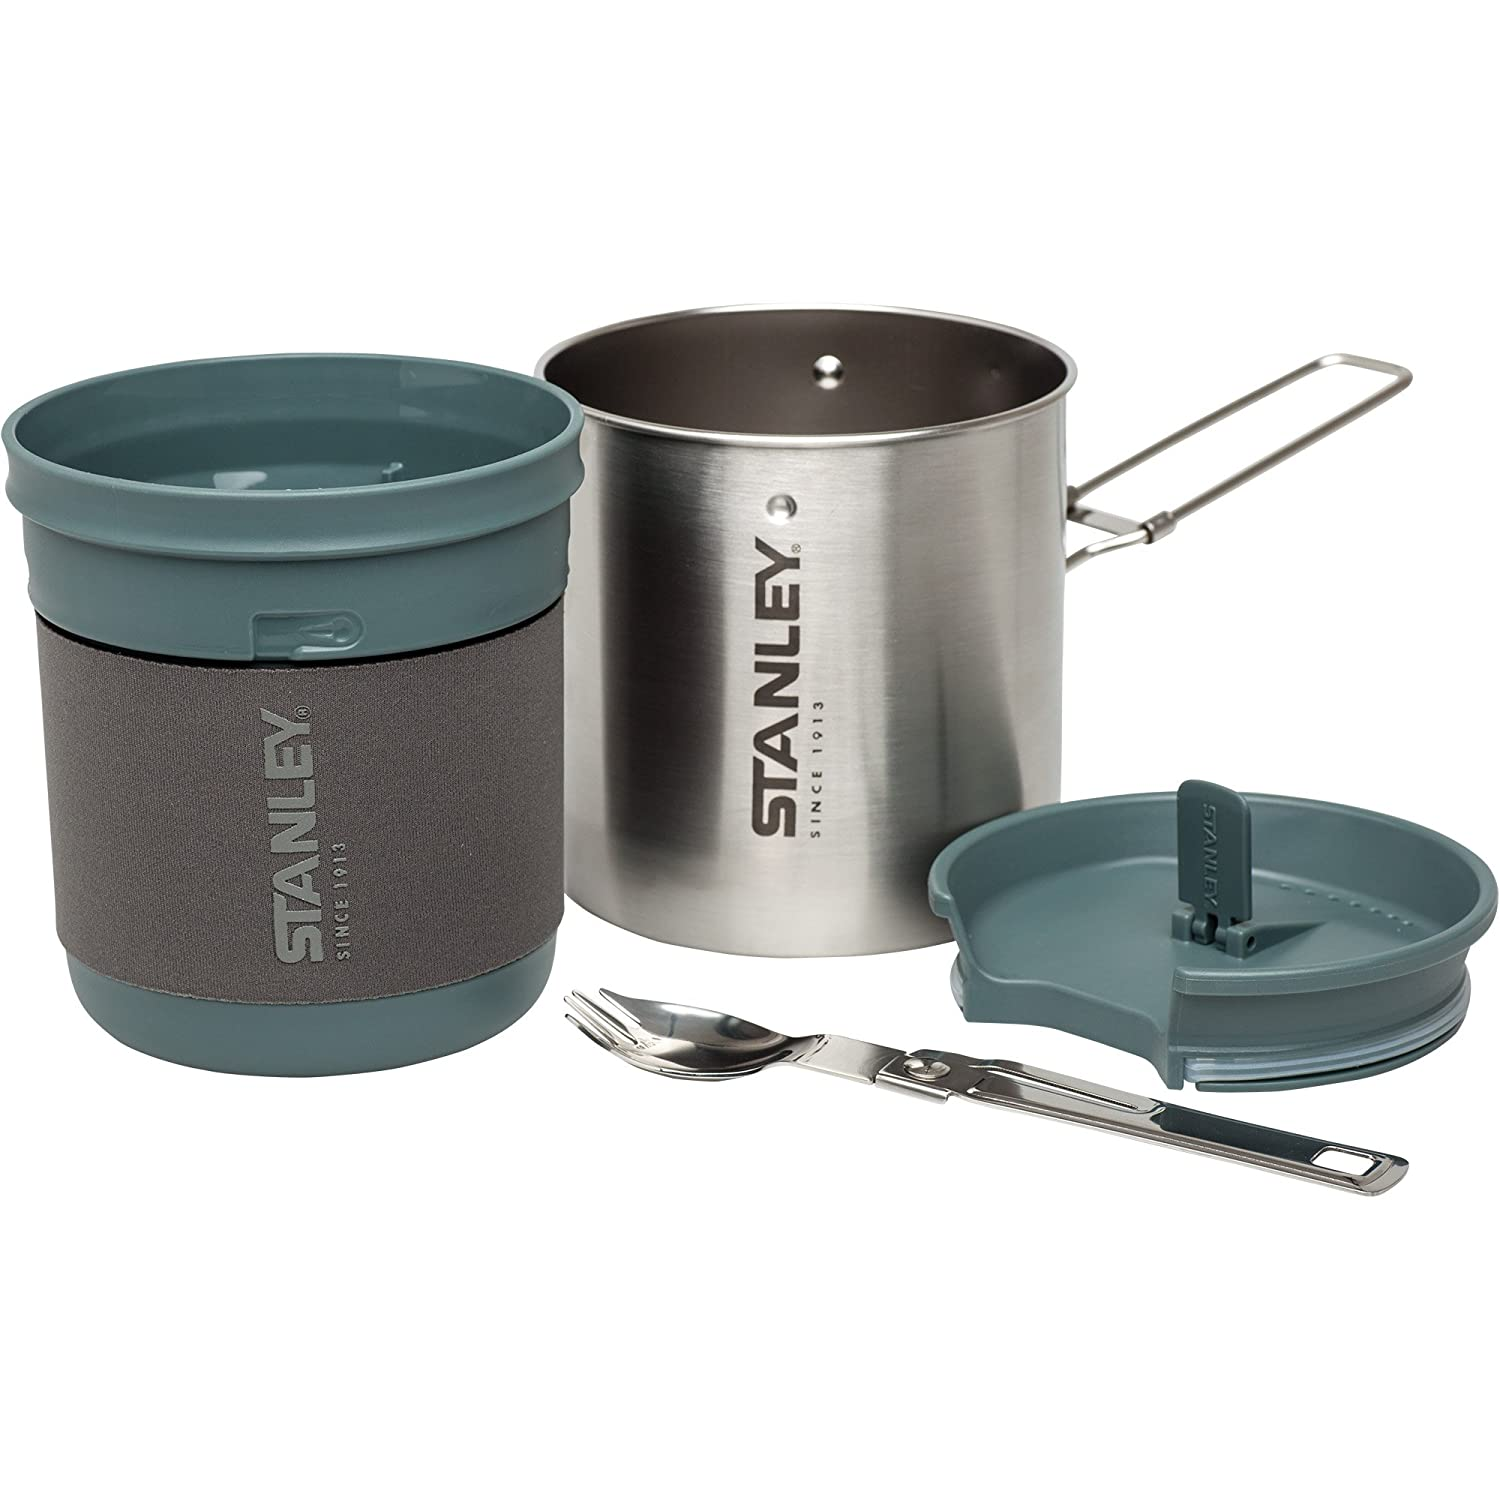 Amazoncom Stanley Mountain Compact Cook Set Stainless Steel 24